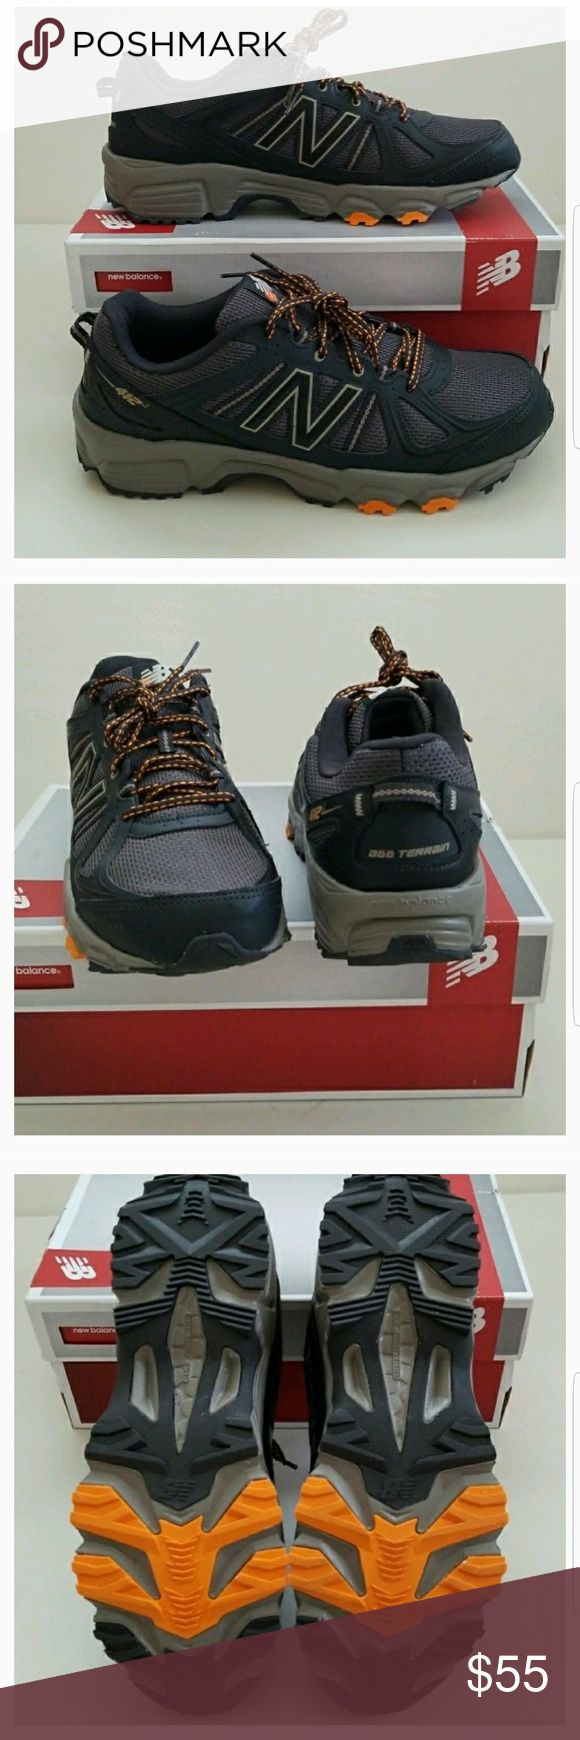 NWT Men's New Balance Trail Running Shoes New men's super awesome trail running fast hiking shoes. New Balance Shoes Athletic Shoes #trailrunningshoes